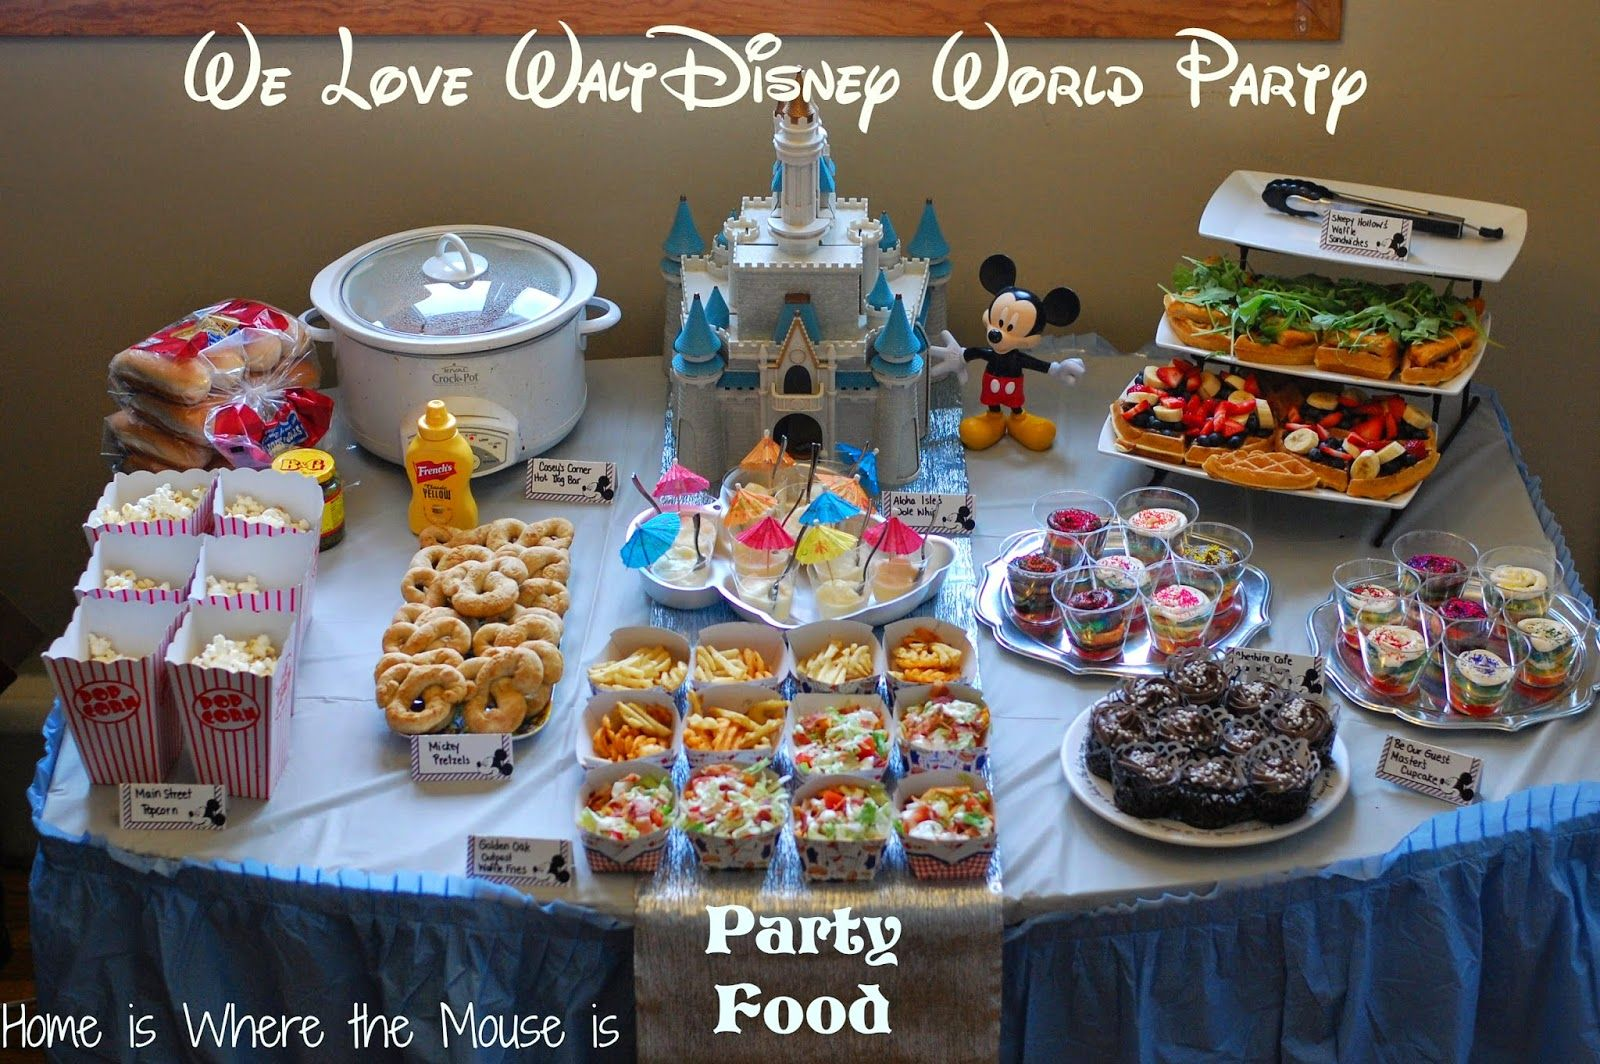 We Love Walt Disney World Party Polynesian resort Themed birthday